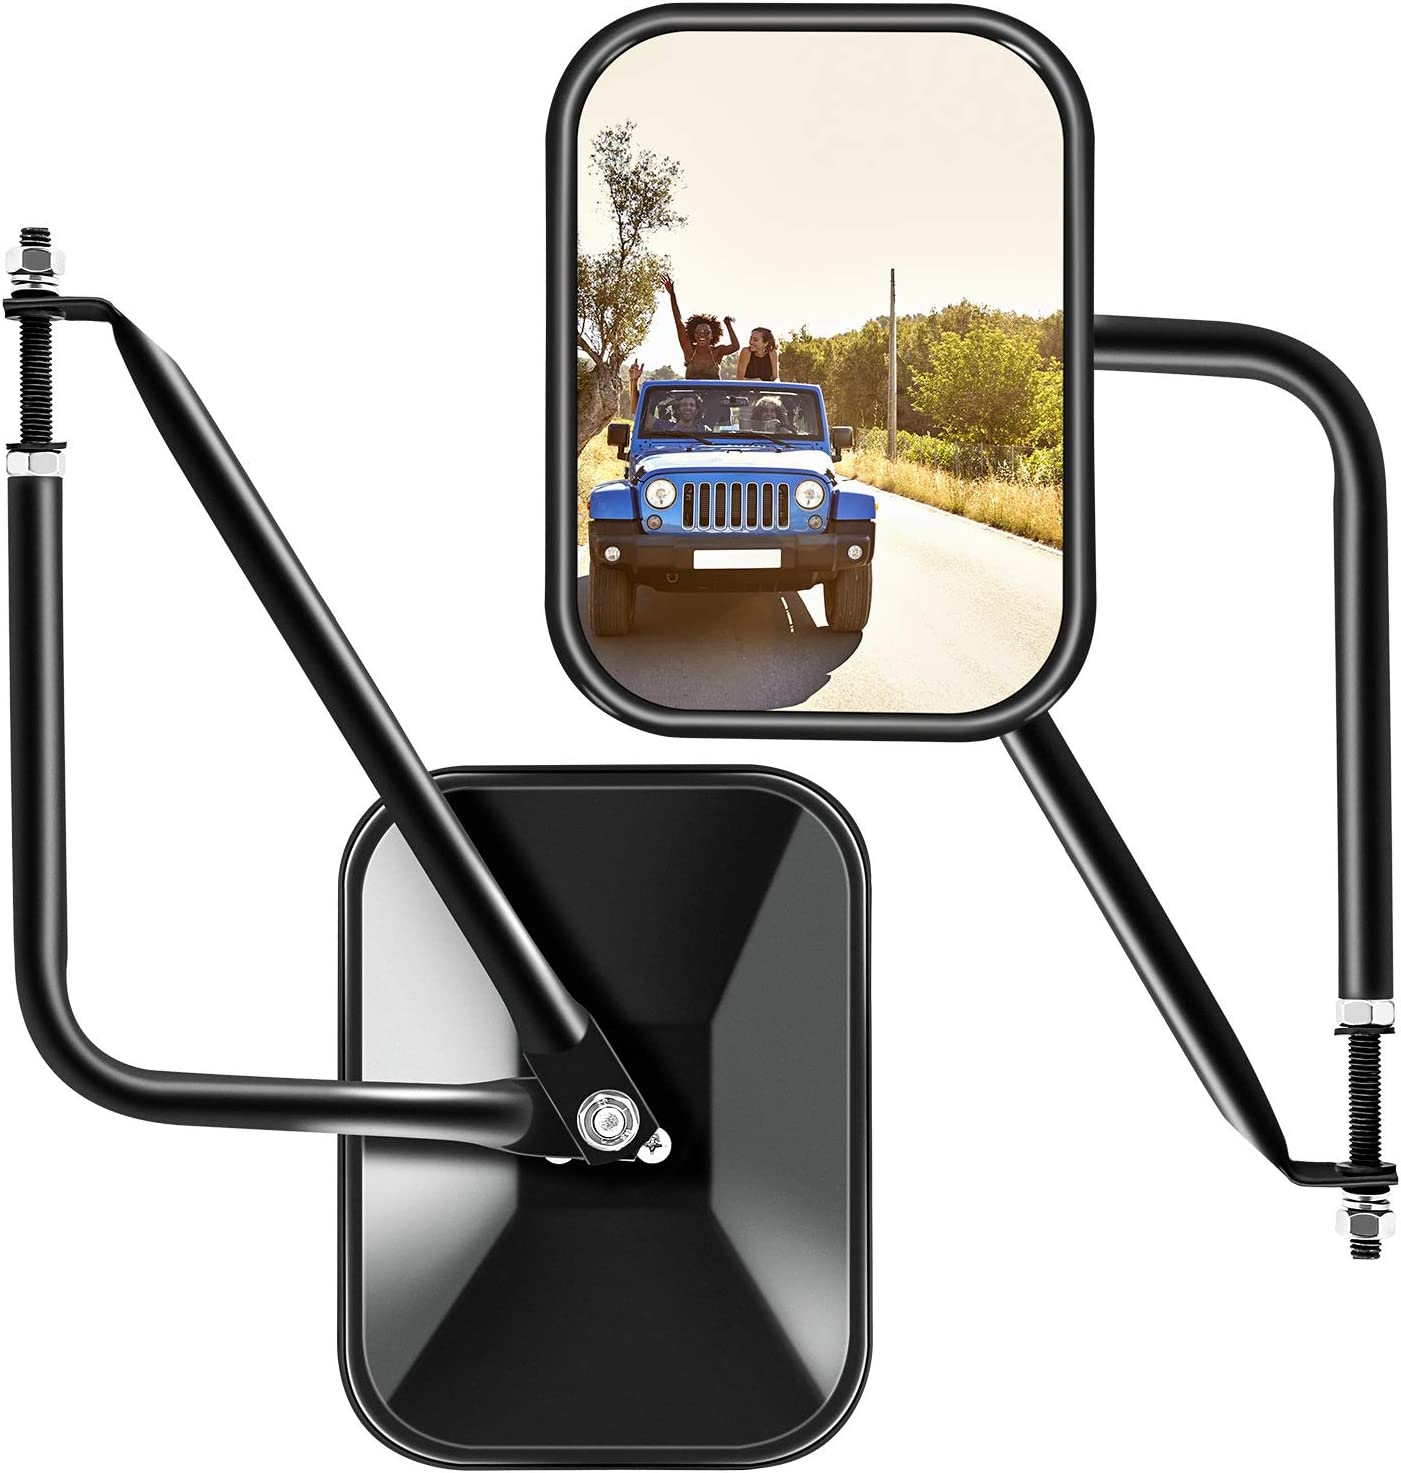 1 Pair Doors off Mirrors Doorless Mirrors Fits Jeep Wrangler Rear View Mirrors Quick Release Mirrors Fits Jeep JK JKU LJ CJ TJ Shake Proof Side Mirrors